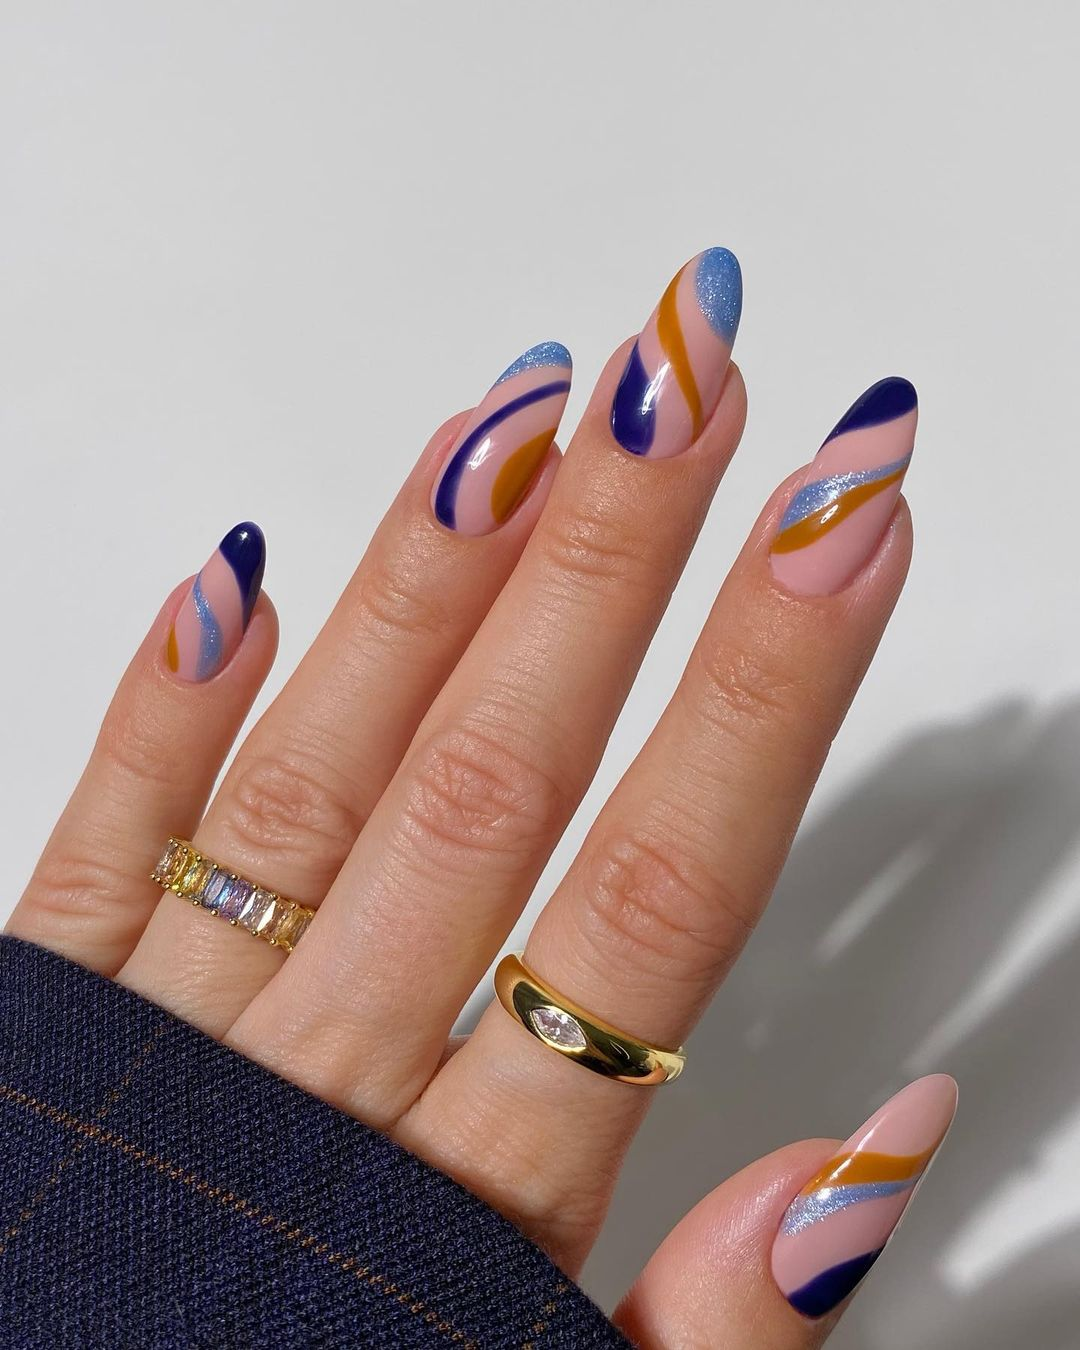 Blue and brown swirl nails